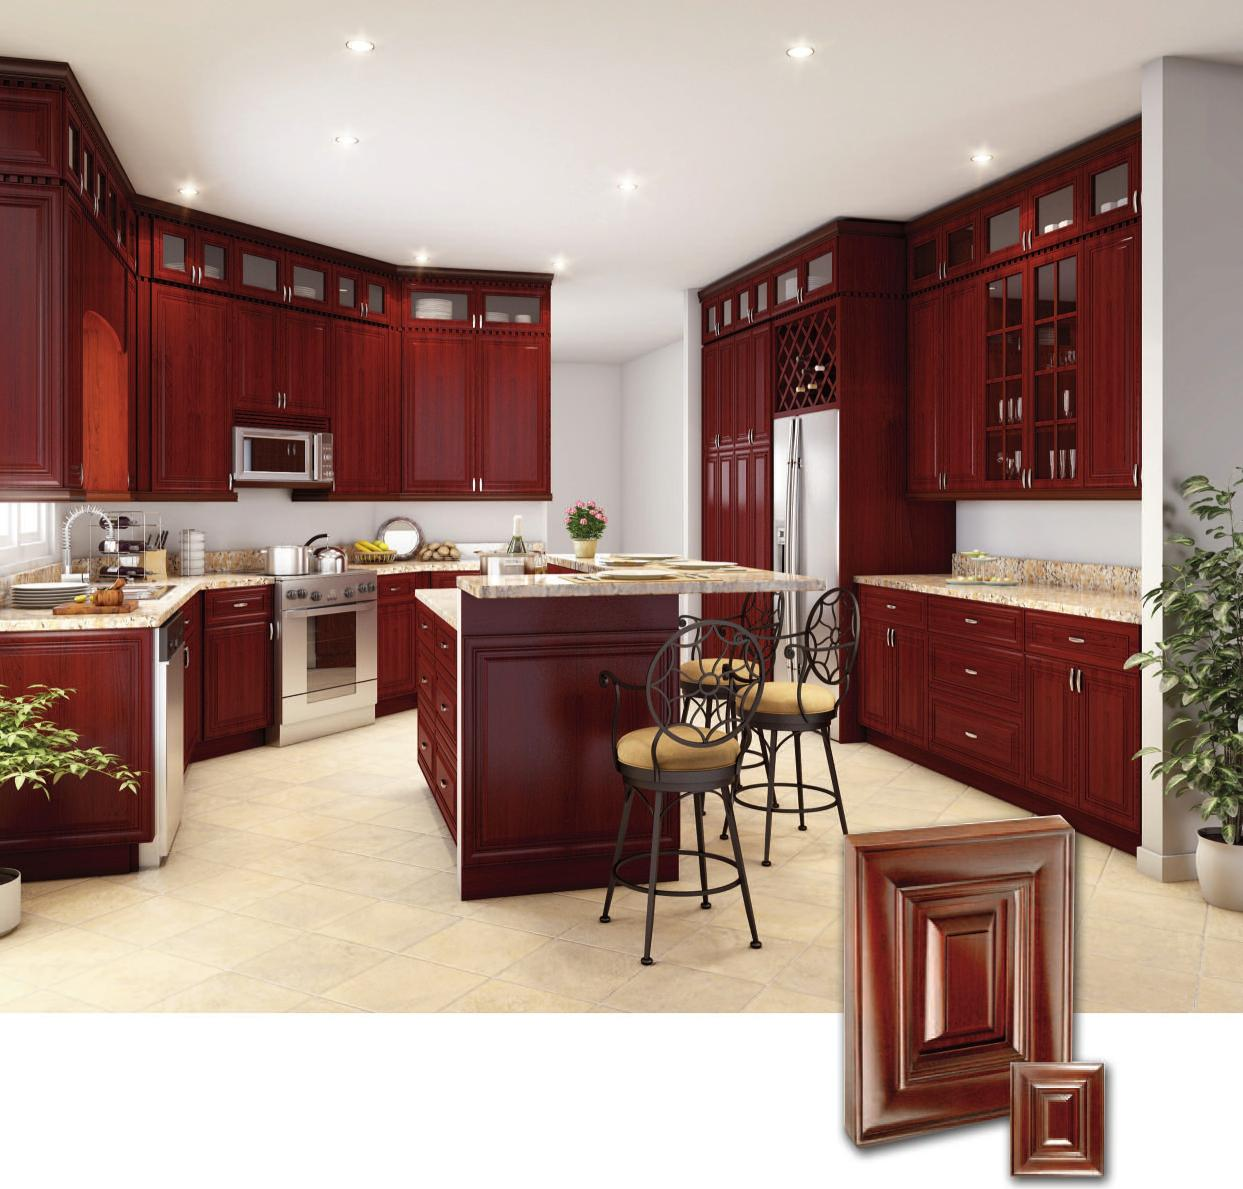 Wonderful Cherry Wood Kitchen Cabinets 1243 x 1189 · 155 kB · jpeg